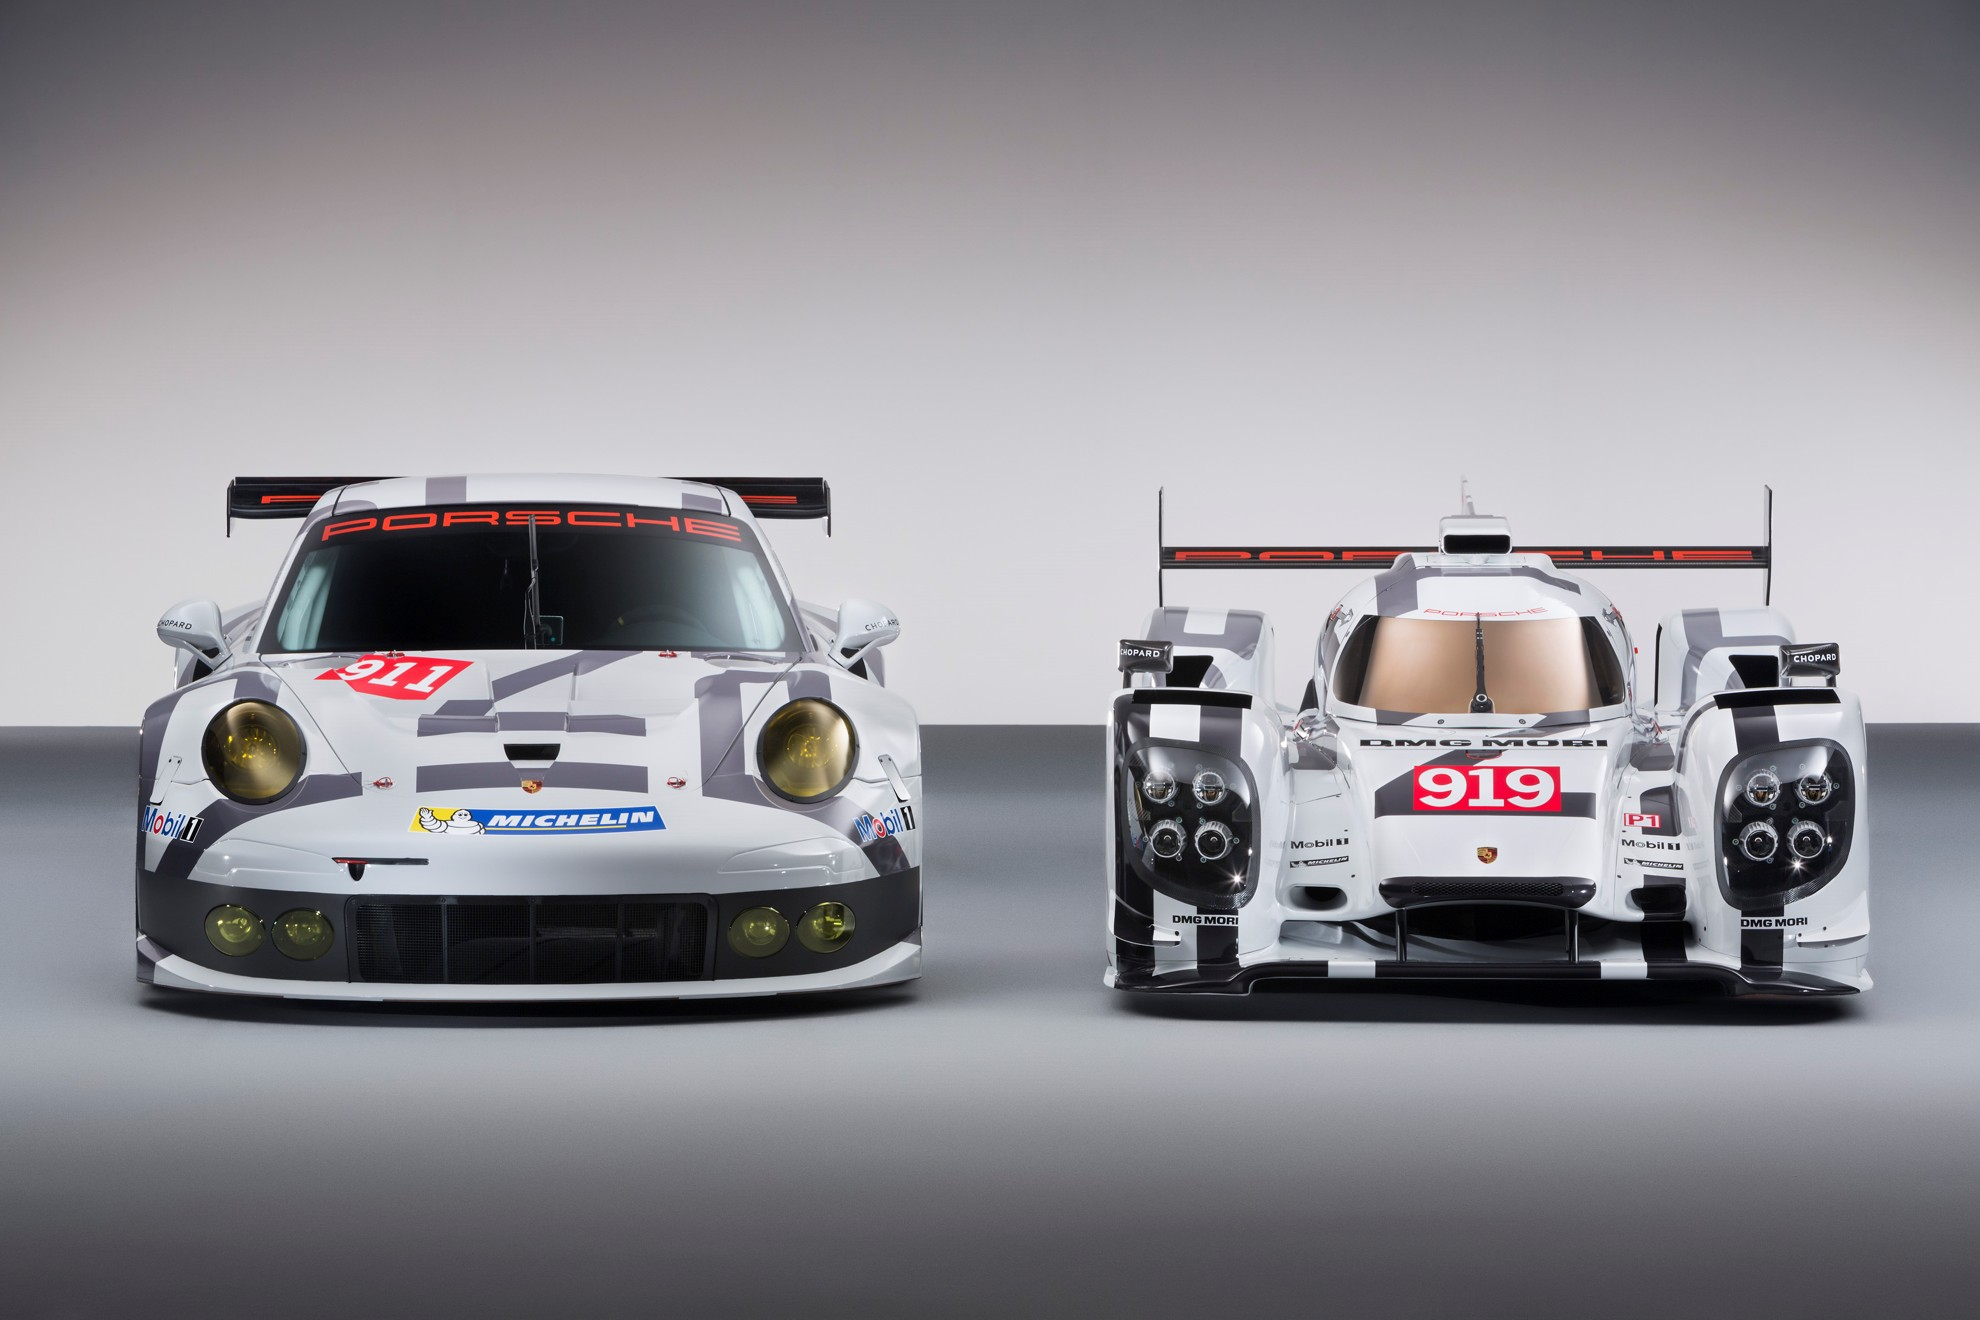 2014 Porsche 911 Rsr And Porsche 919 Hybrid At The Geneva